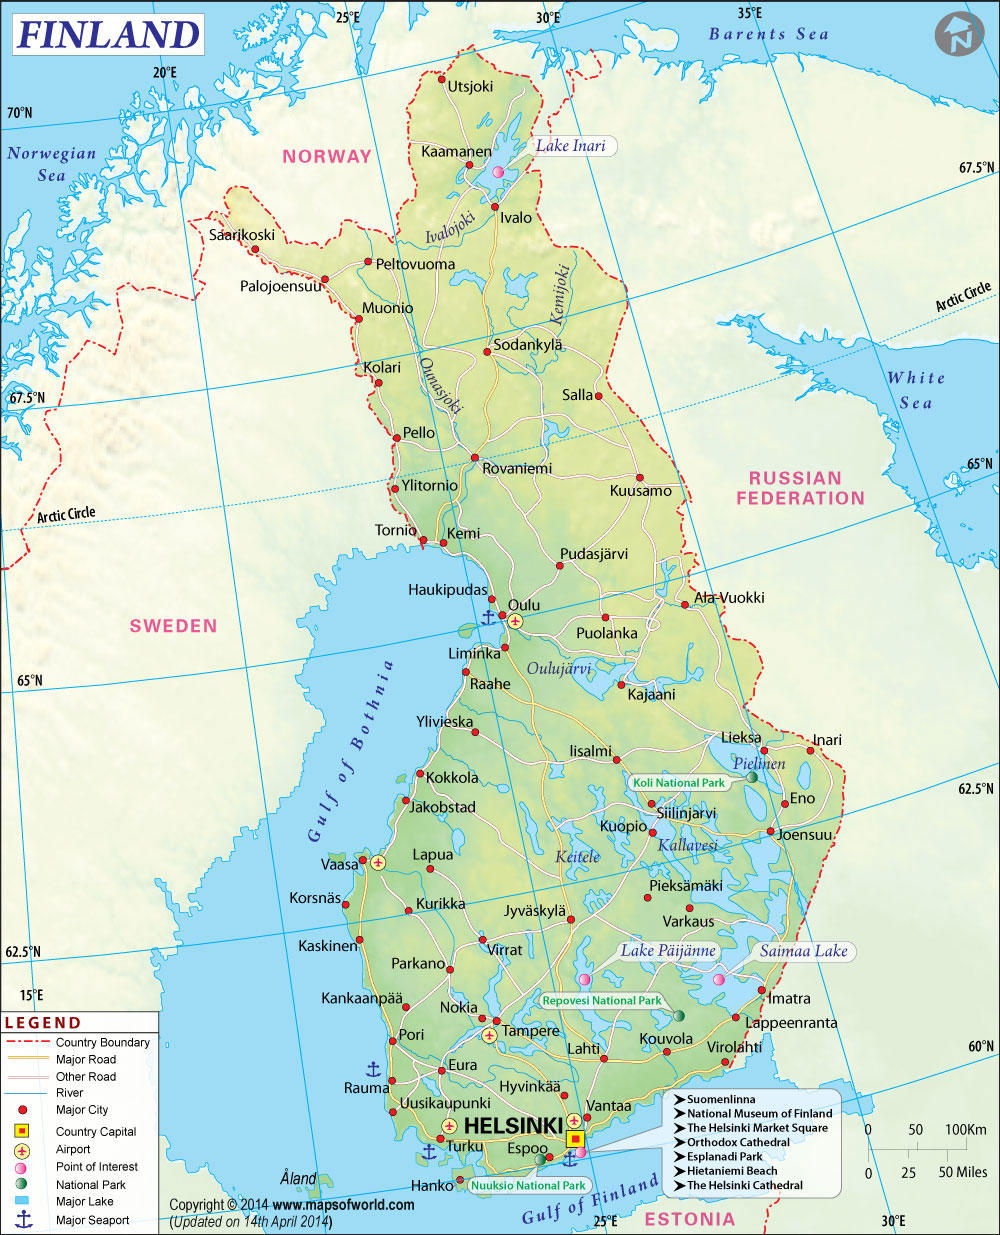 Kuusamo is located south of the Arctic Circle in the eastern part of Finland, adjacent to the Russian Federation.